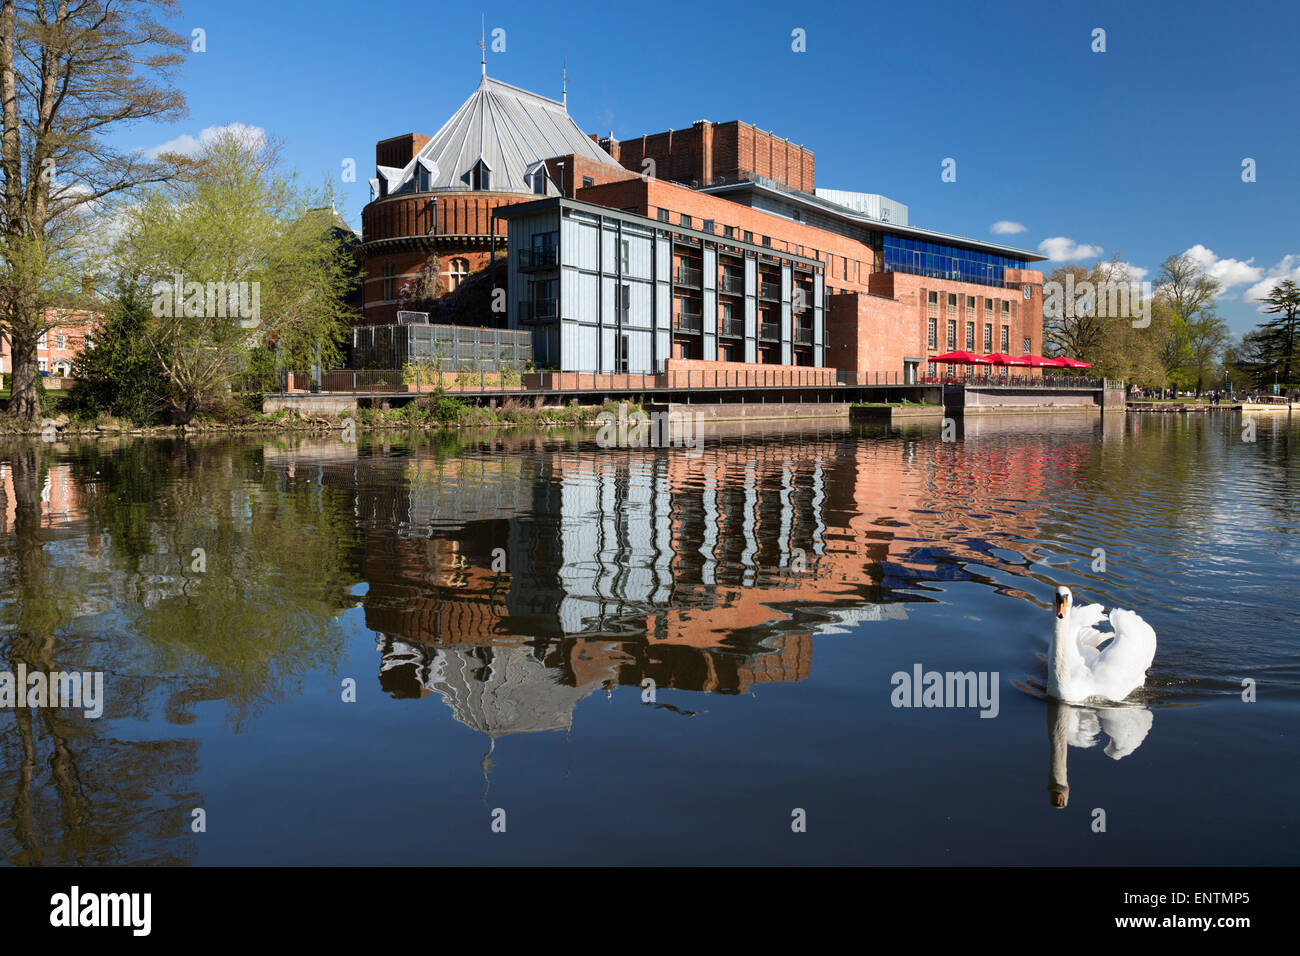 The Swan Theatre and the Royal Shakespeare Theatre on the River Avon, Stratford-upon-Avon, Warwickshire, England, - Stock Image